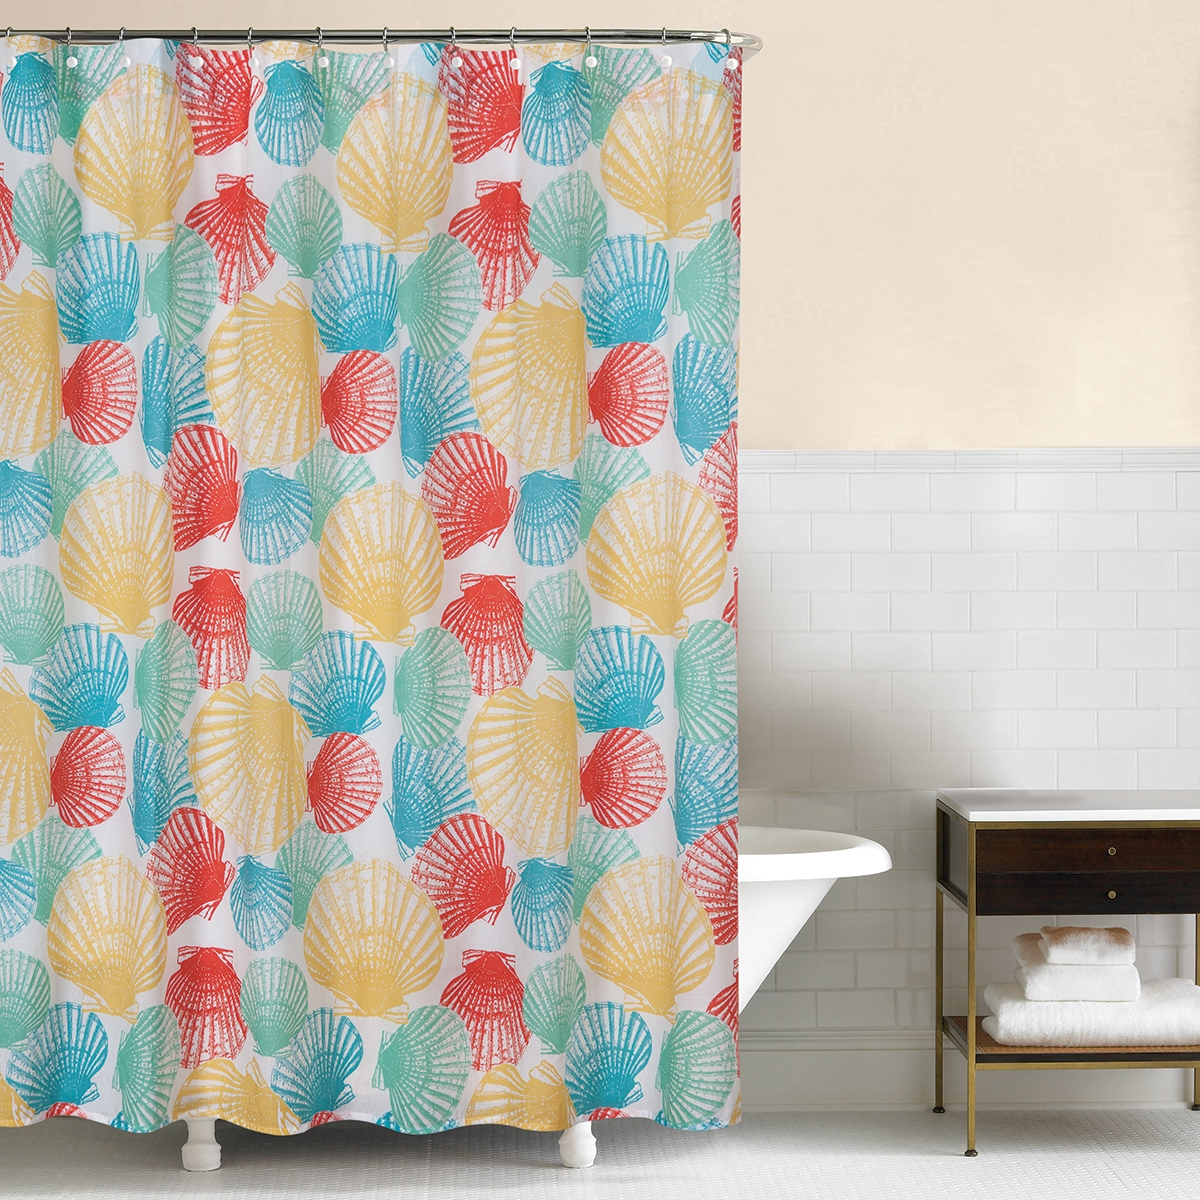 Captiva Island Shower Curtain 820887272